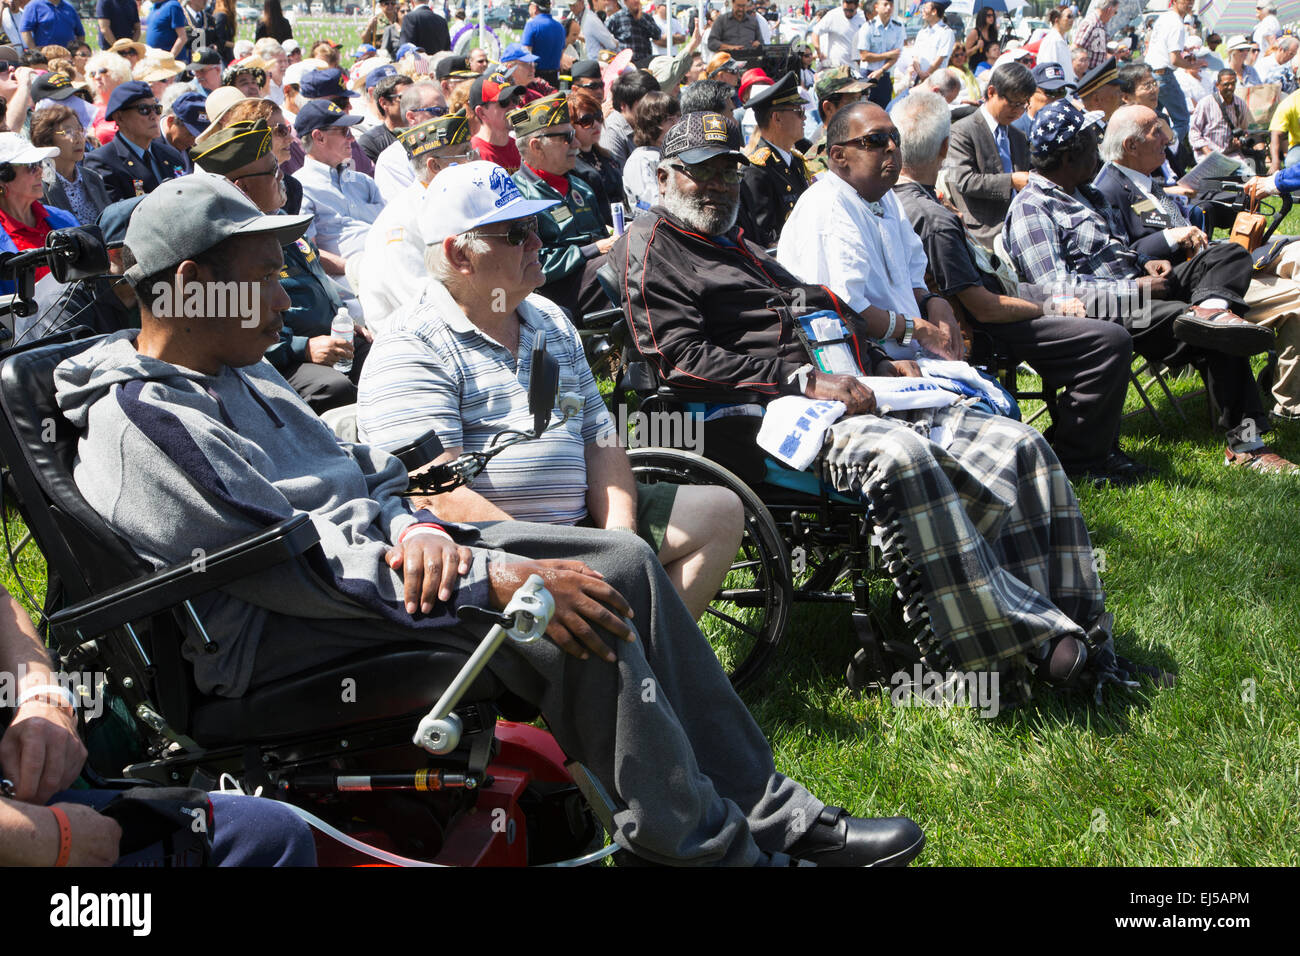 Wounded vets in wheel chairs at Los Angeles National Cemetery Annual Memorial Event, May 26, 2014, California, USA - Stock Image